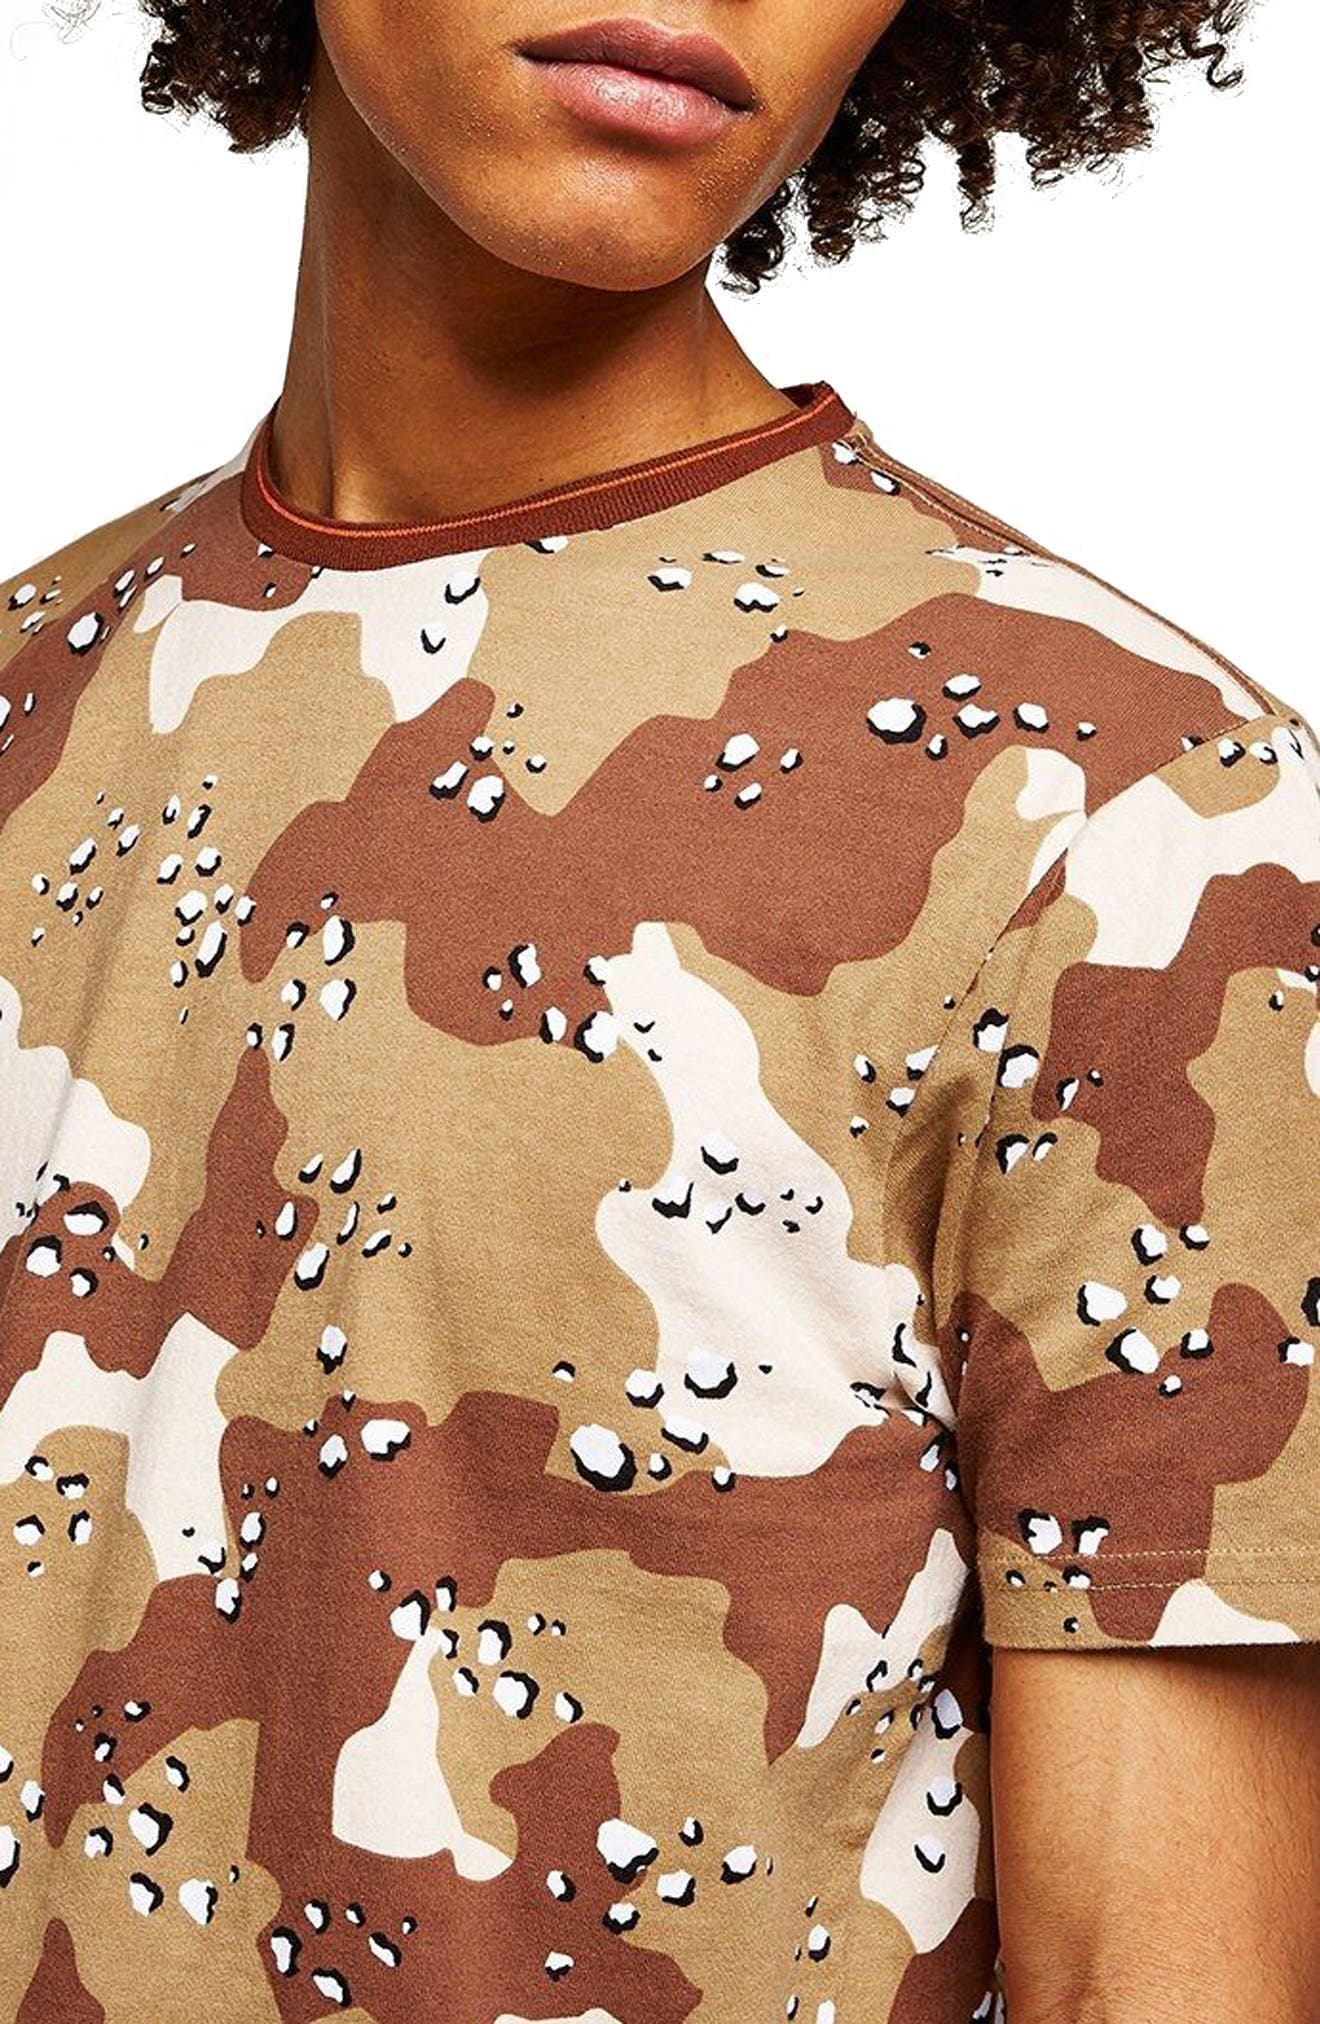 Camouflage Graphic T-Shirt,                             Main thumbnail 1, color,                             Beige Multi